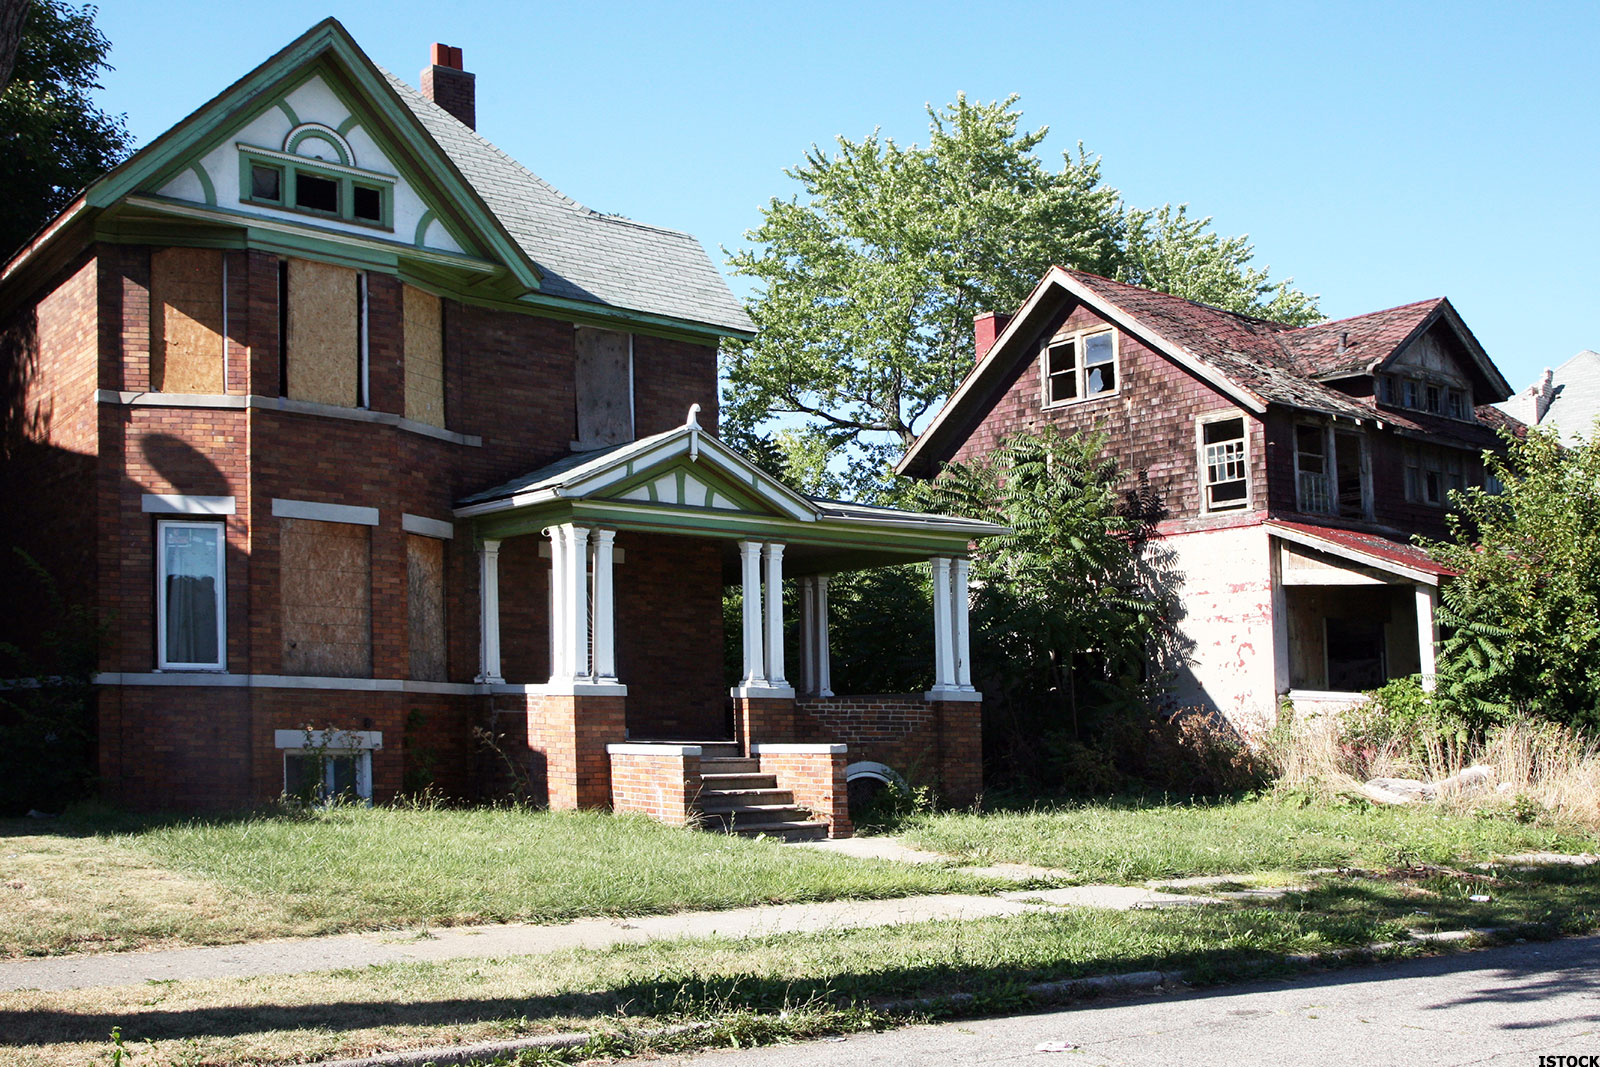 10 Cities Where Foreclosures Still Haunt The Housing Market